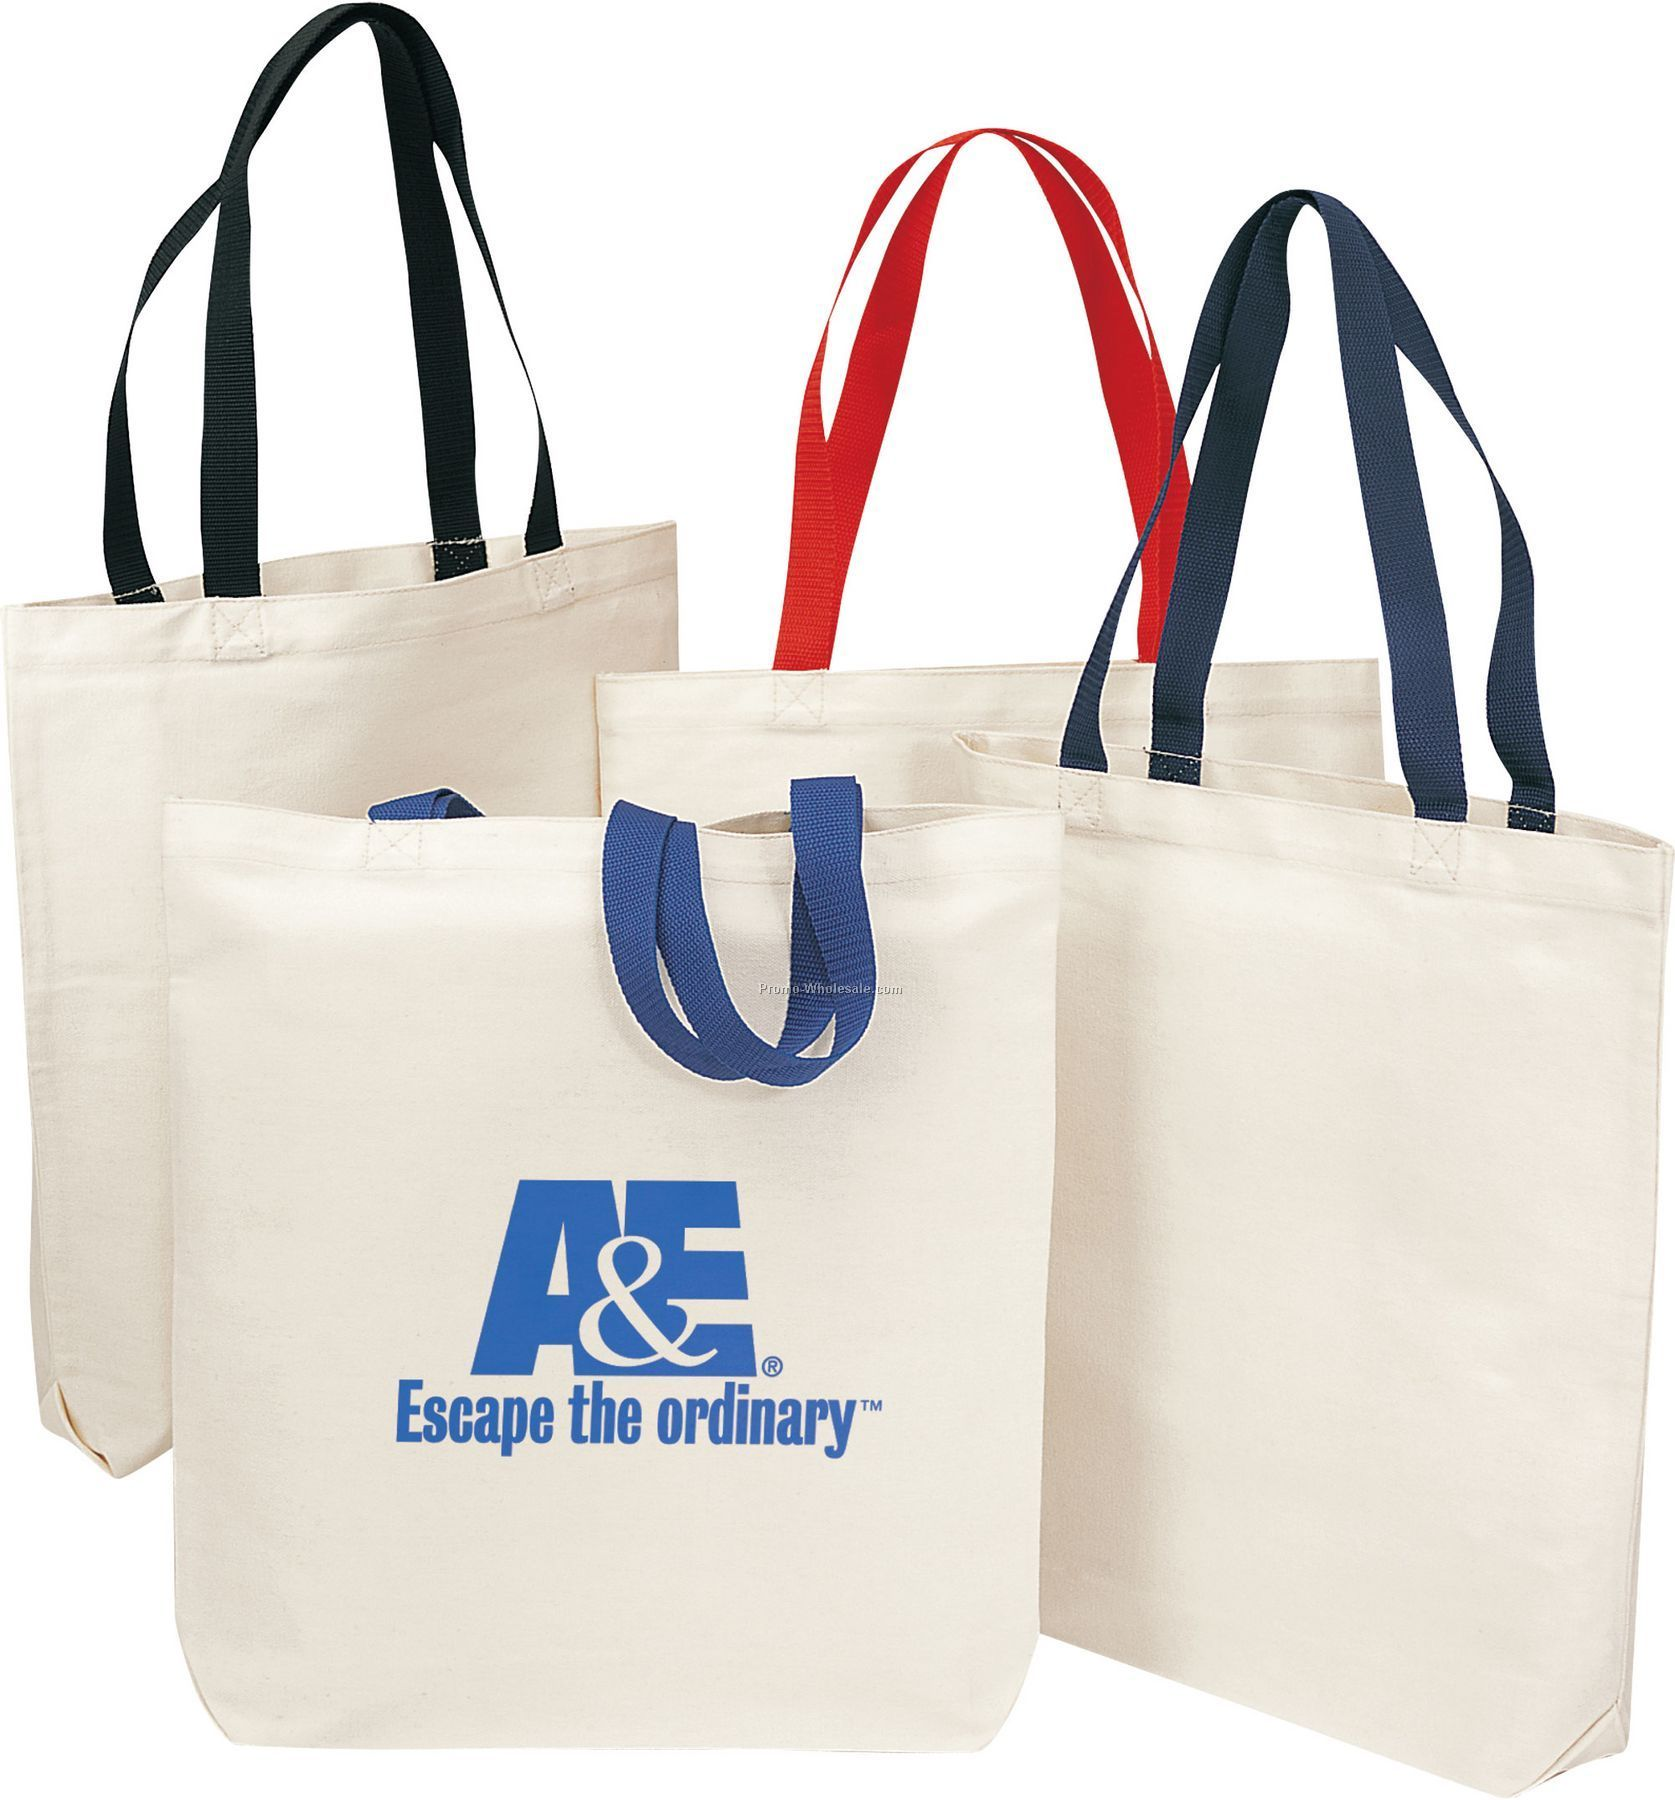 Two Tone Economy Tote Bag